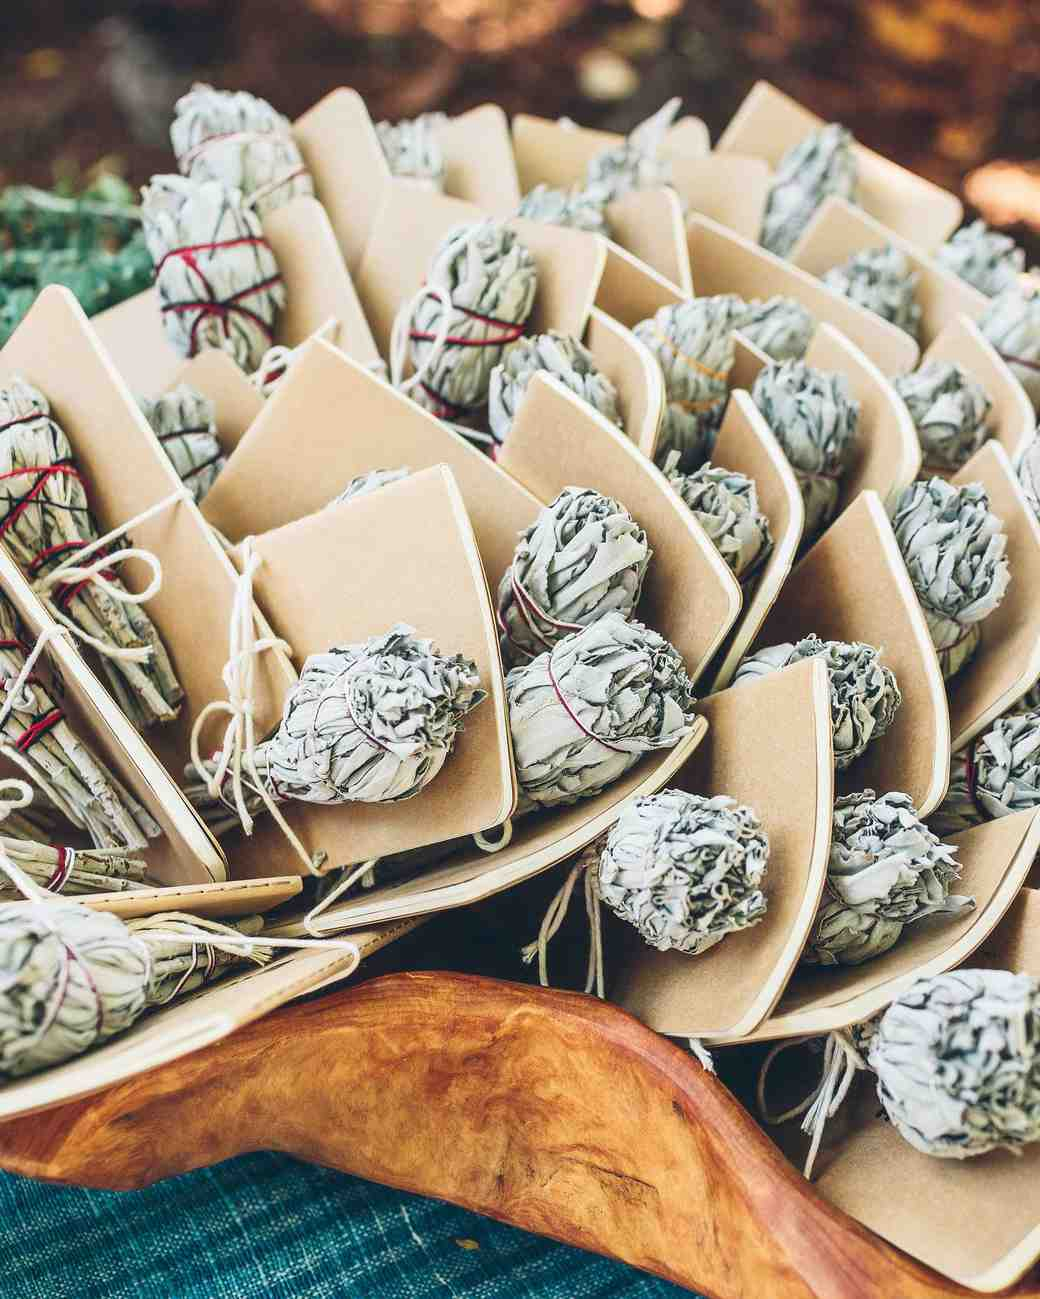 Small Gifts For Wedding Guests: 50 Creative Wedding Favors That Will Delight Your Guests